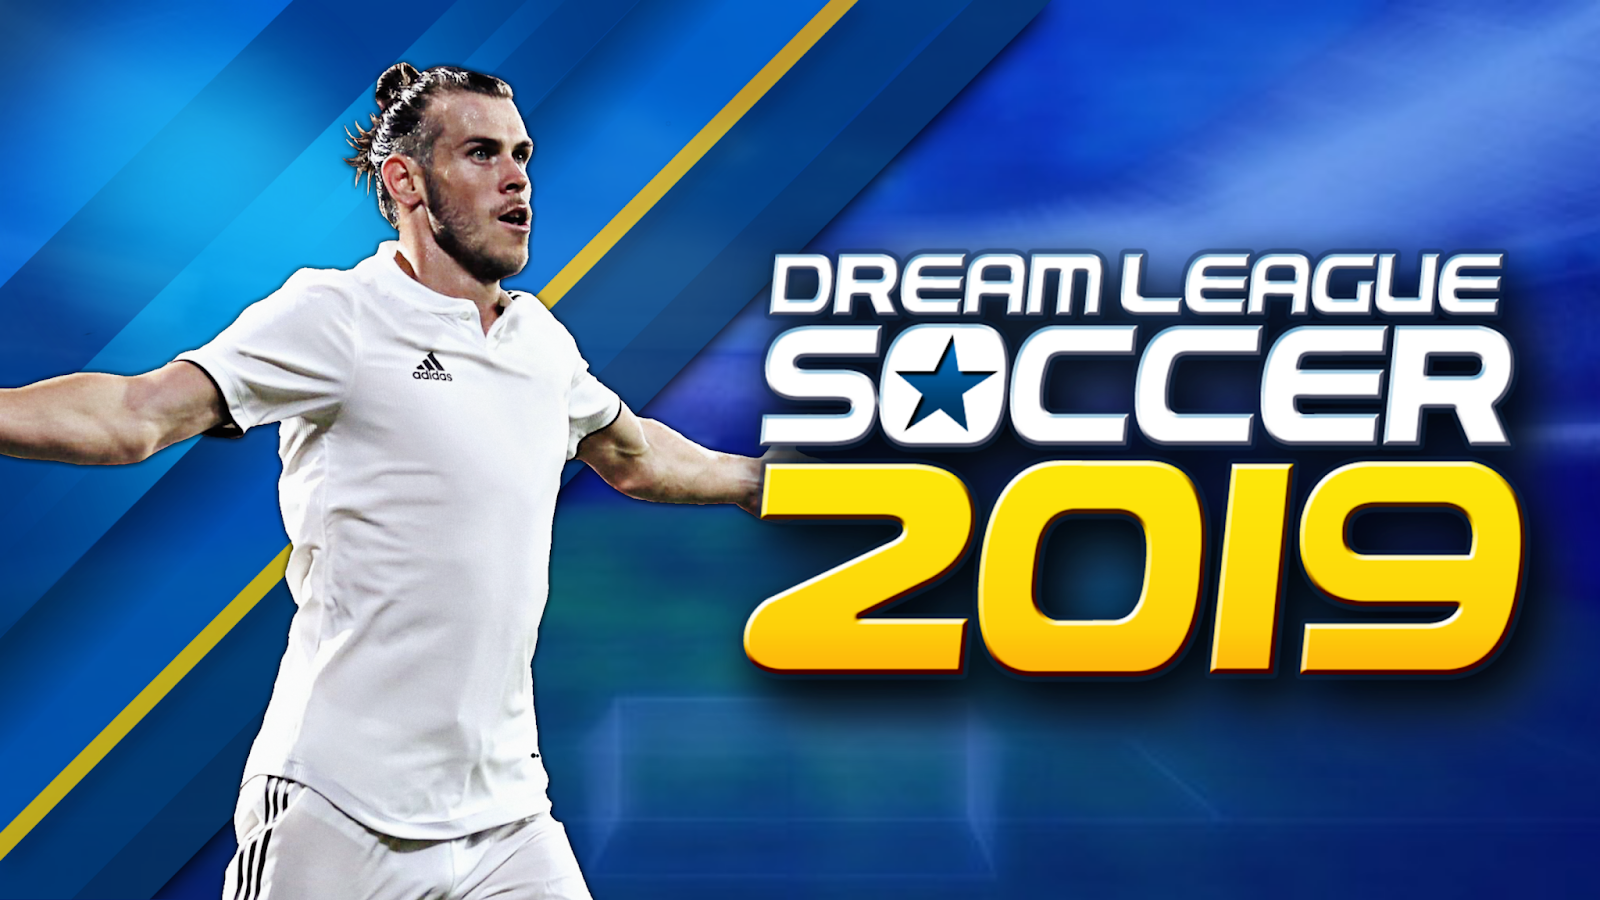 Dream League Soccer 2019 Mod Apk v6 12 Unlimited Money - Appking